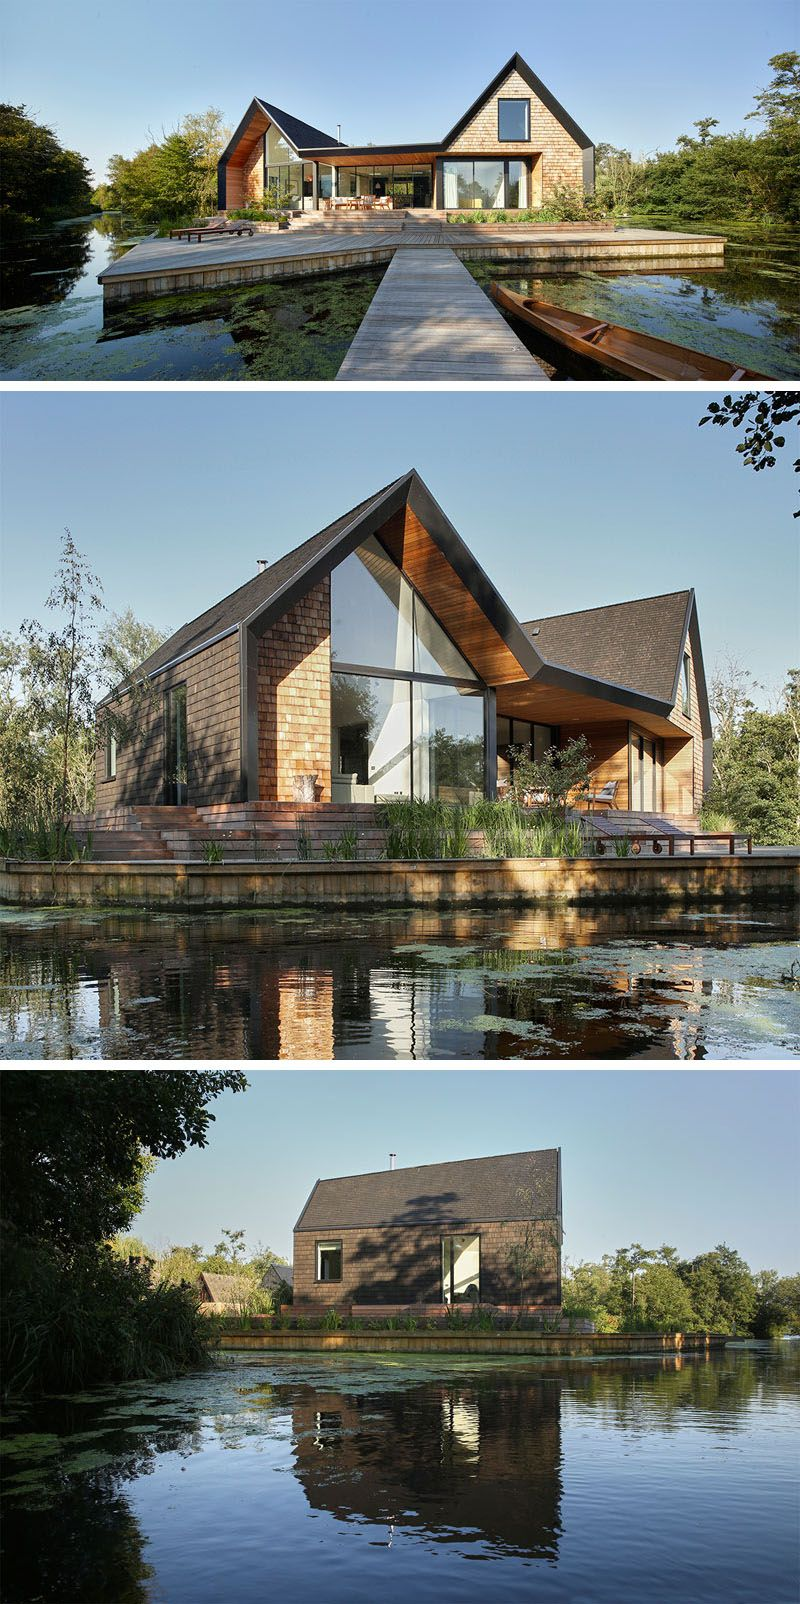 This New Modern House Covered In Wood Shingles Has Pitched Roofs, A  Separate Boat Shed, Sits Beside A Secluded Lagoon And Can Also Be Rented  Out For ...